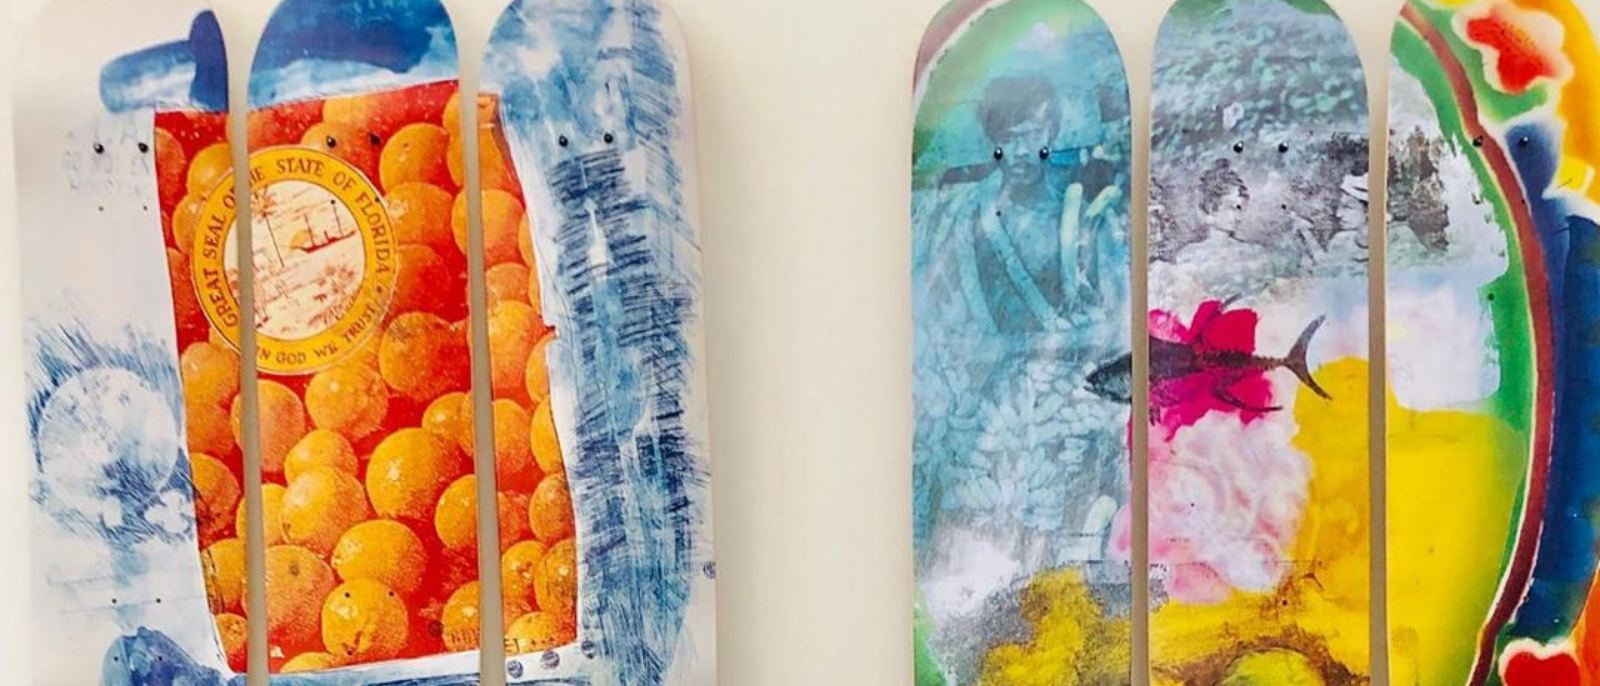 """Skate decks with details from Robert Rauschenberg's """"The 1/4 Mile"""" at LACMA Store"""